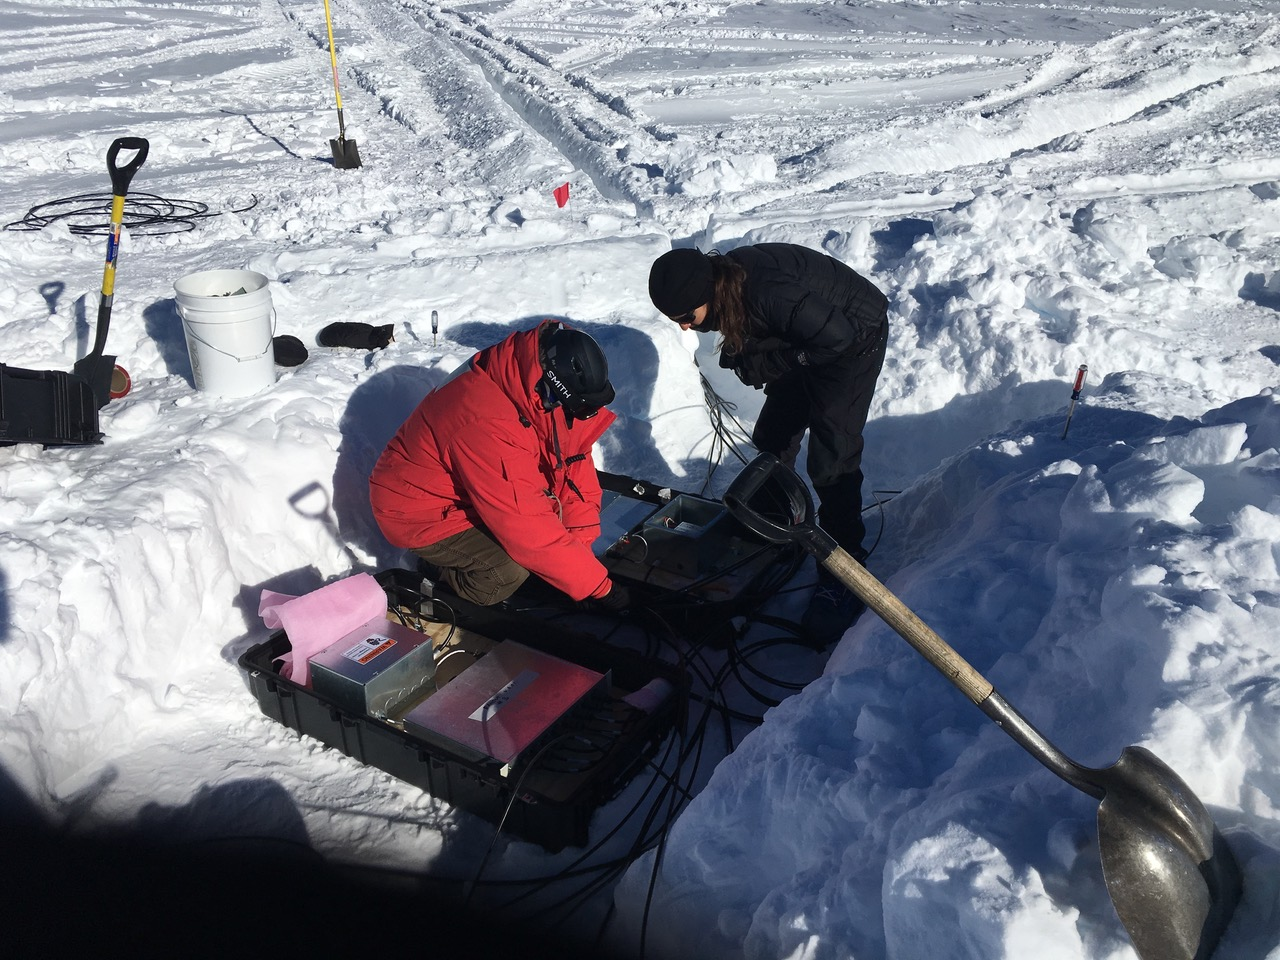 When the standard equipment for maintaining your physics experiment includes a snow shovel...